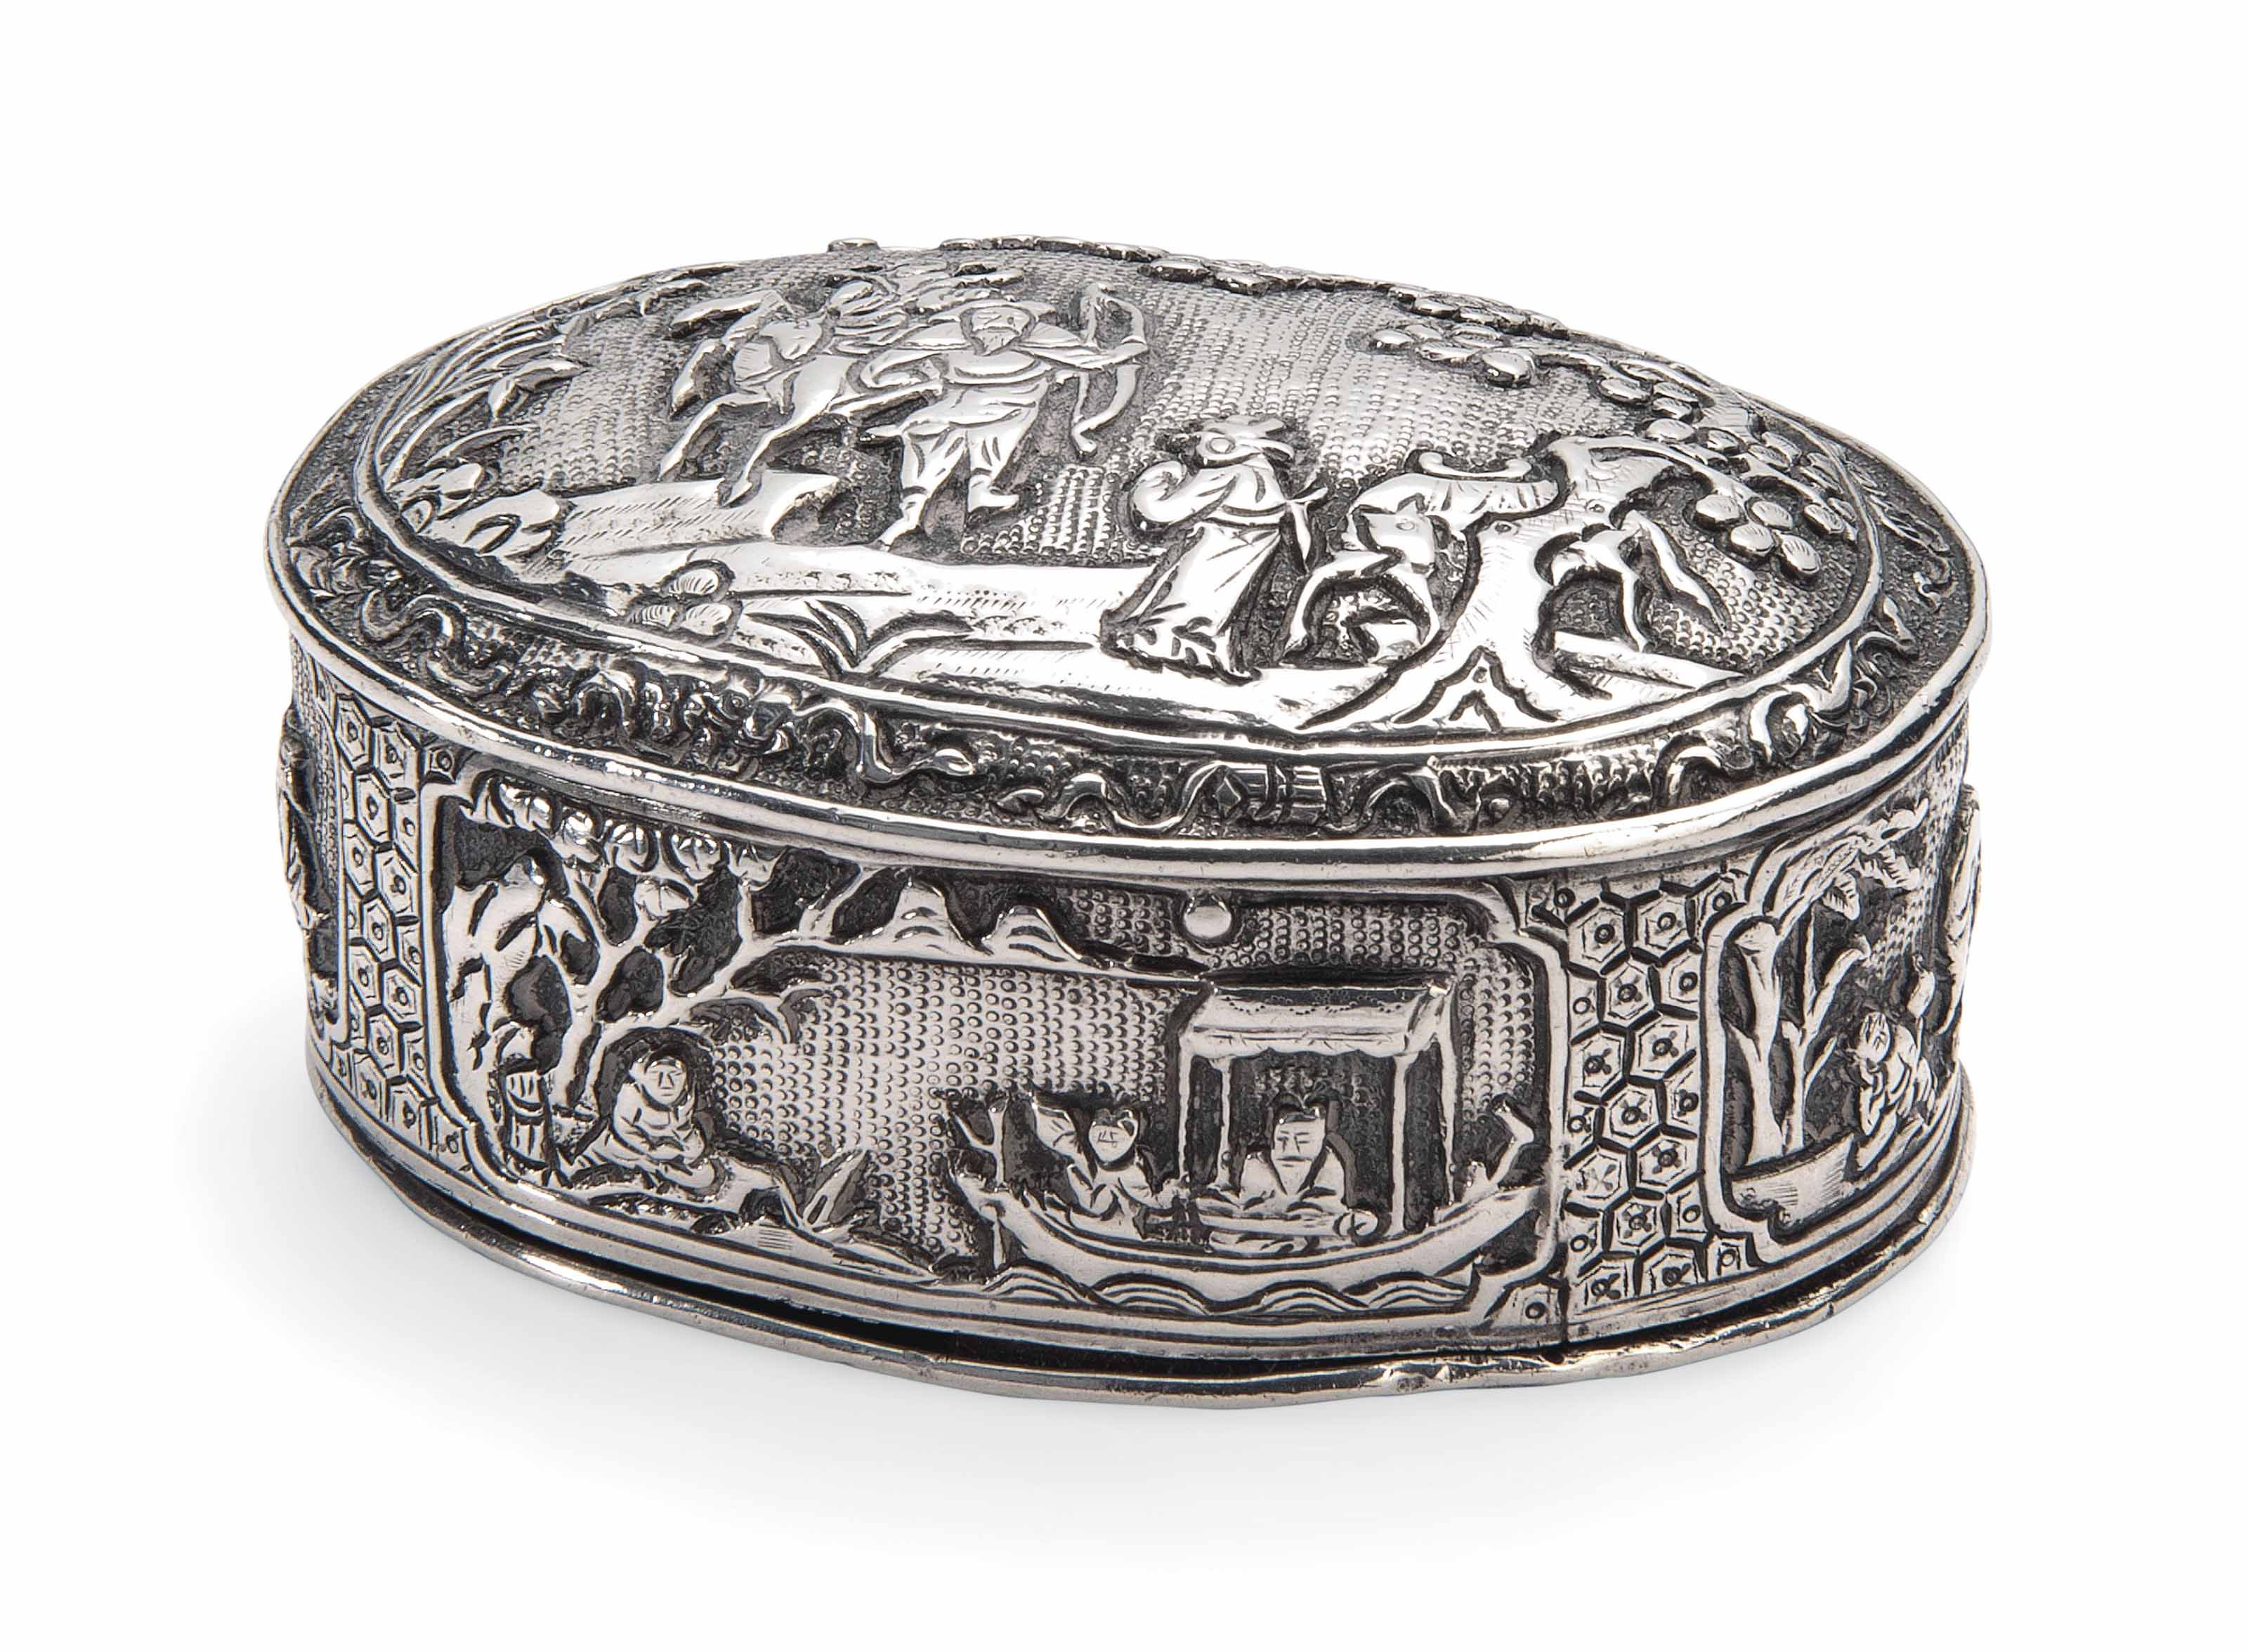 A CHINESE SILVER TOBACCO BOX